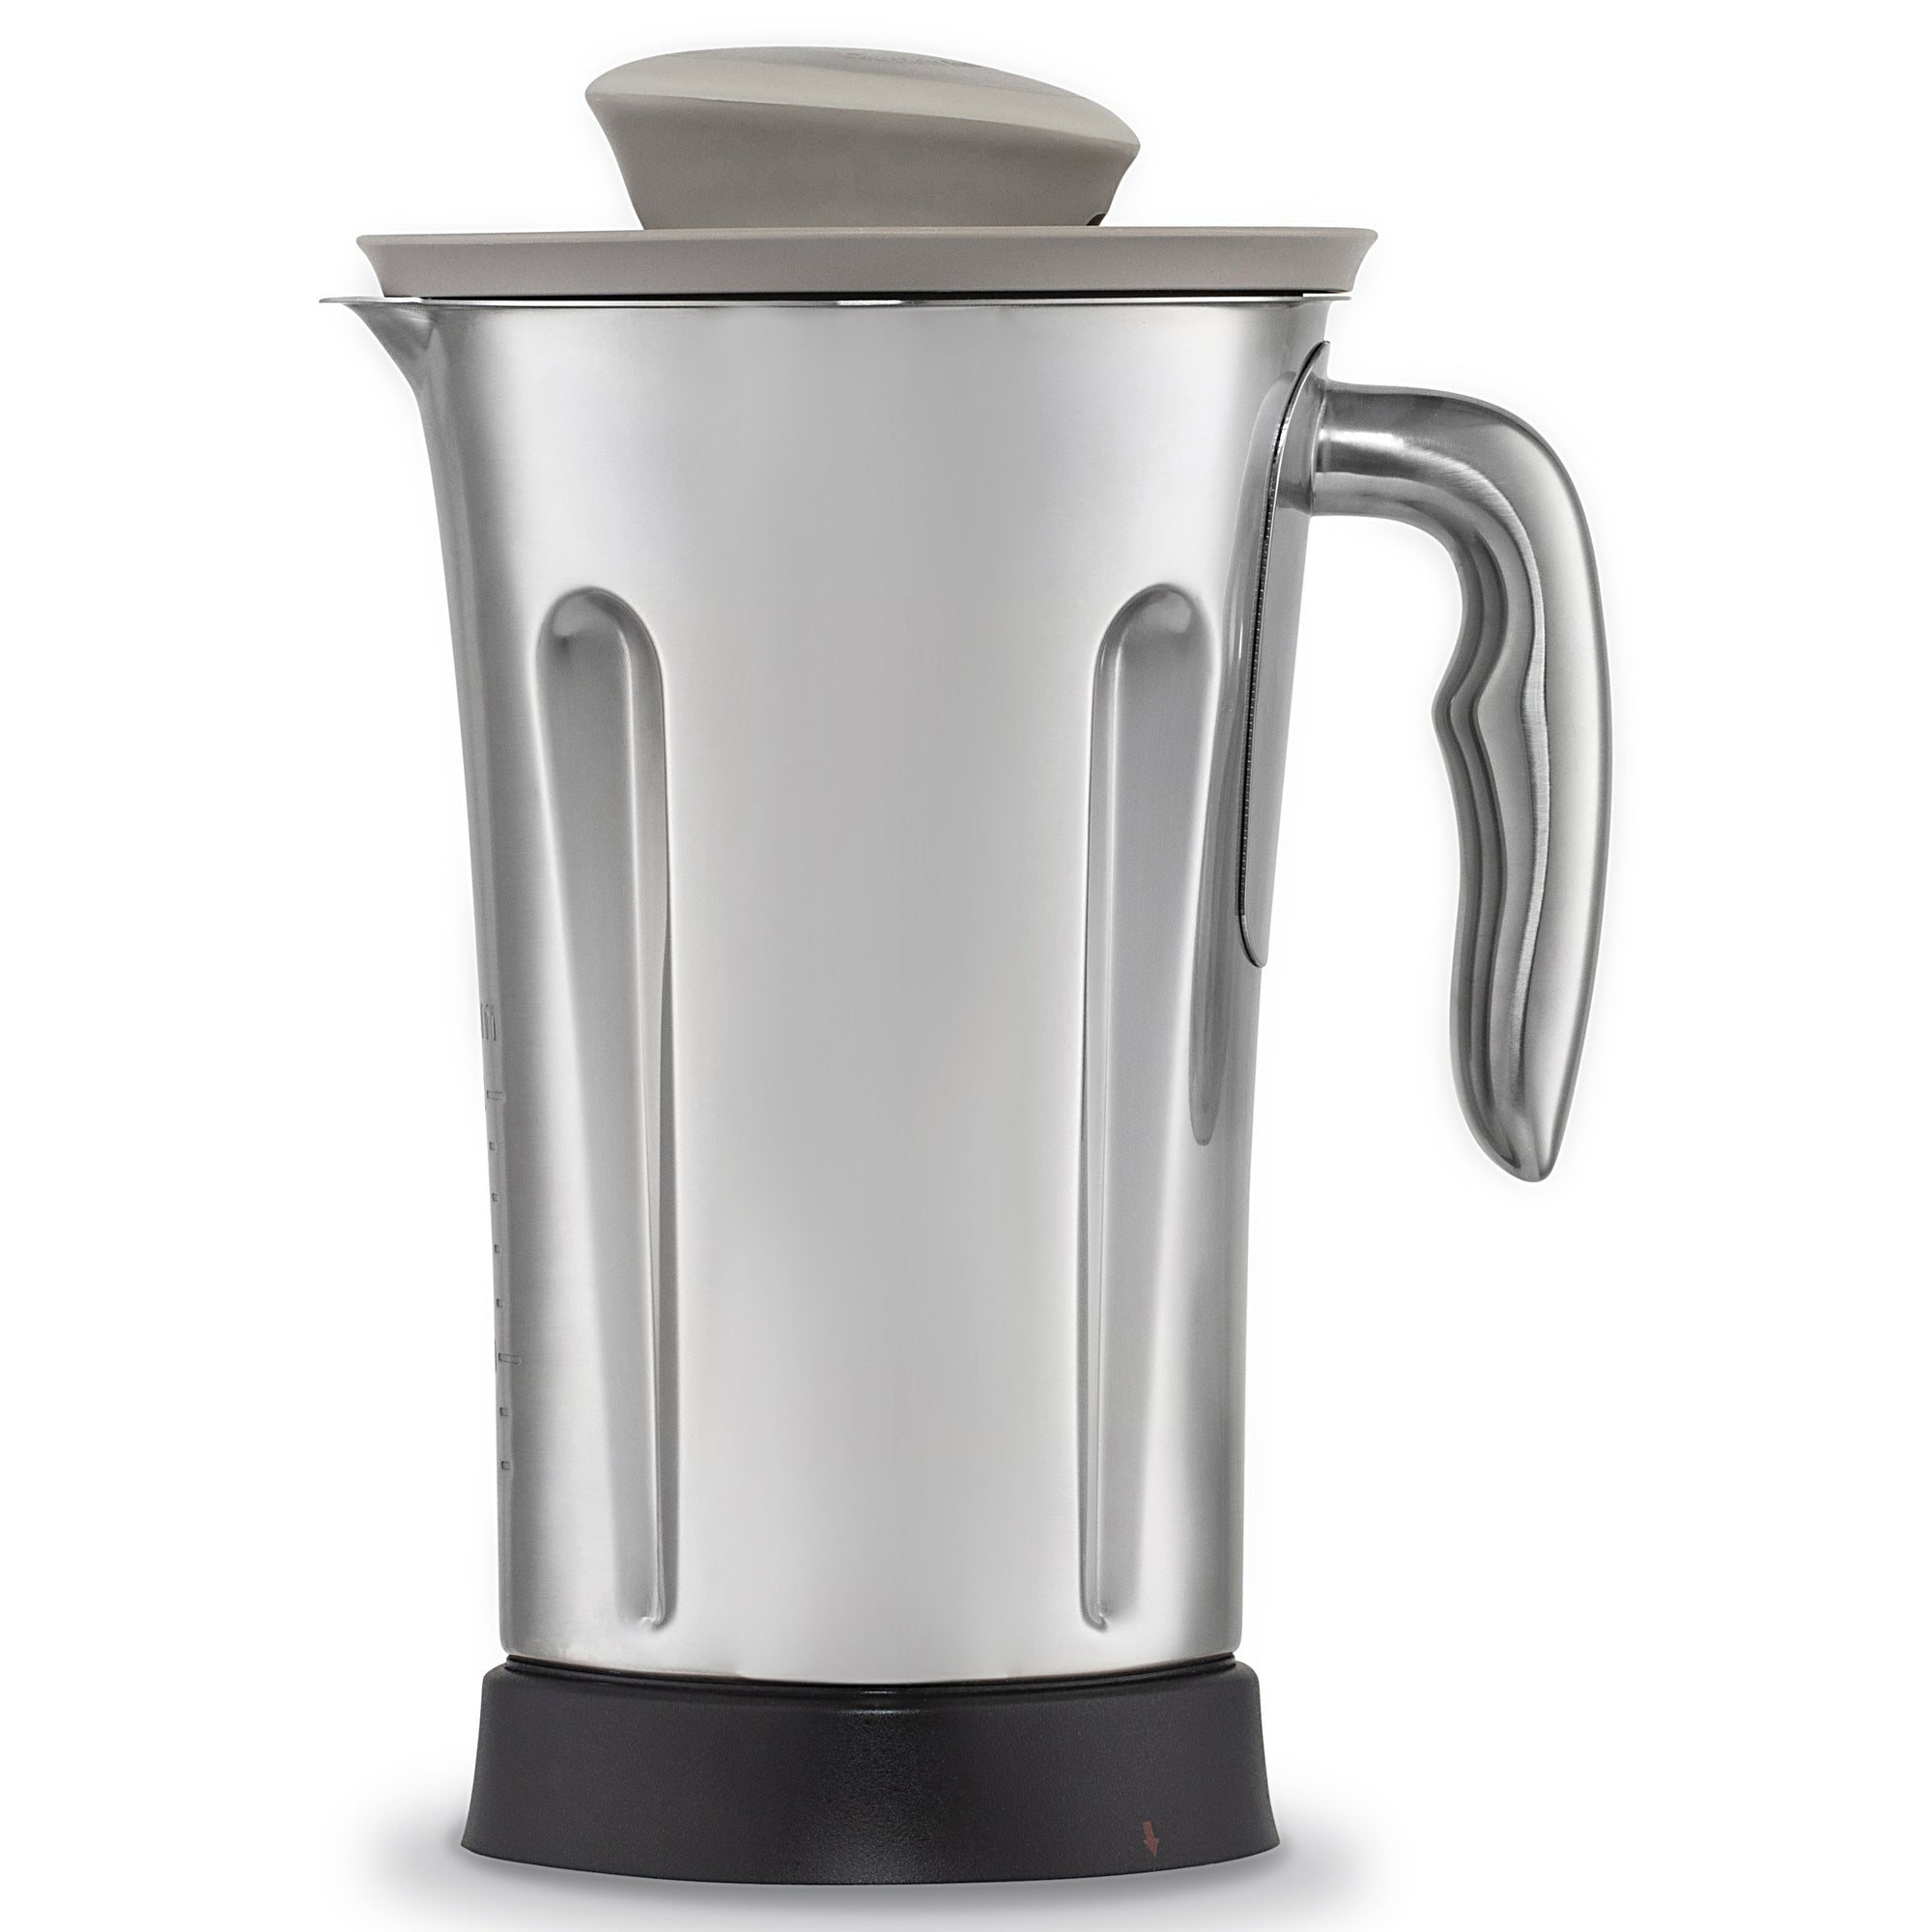 luvele-eu - Replacement Stainless Steel Vibe Blender Jug 1.75L